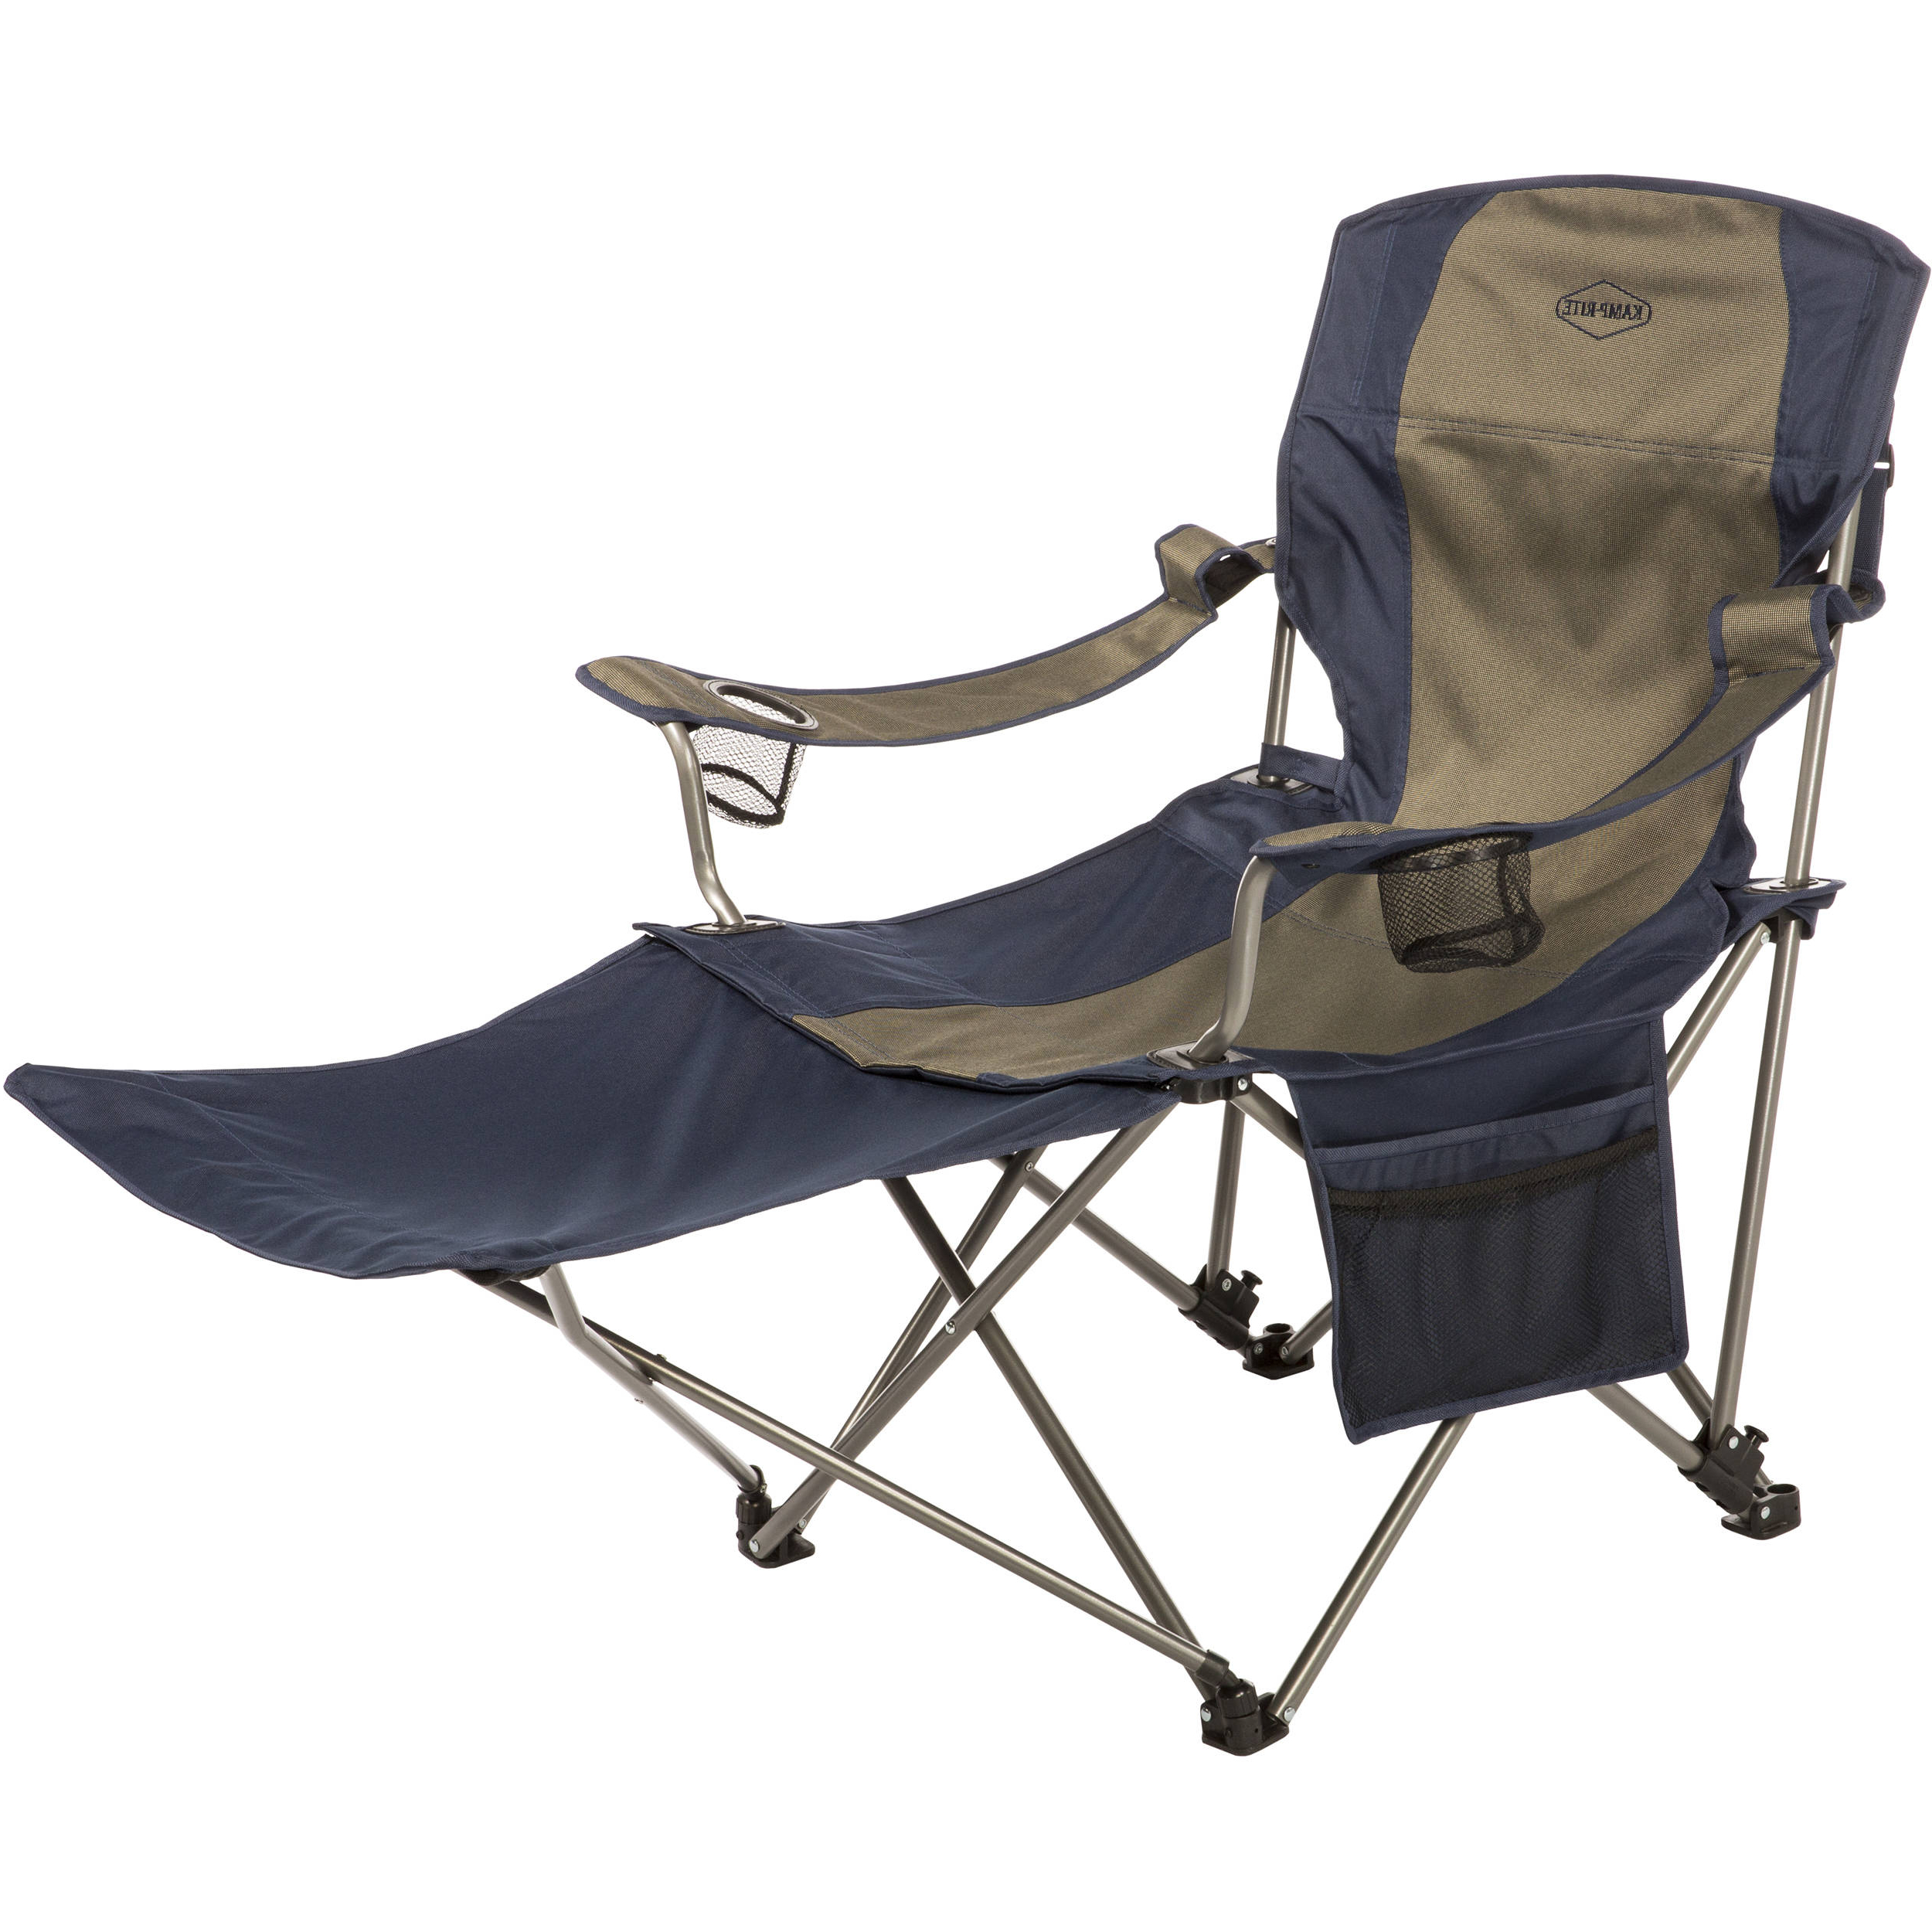 Portable Extendable Folding Reclining Chairs Within Most Popular Kamp Rite Folding Chair With Removable Foot Rest (Gallery 21 of 25)